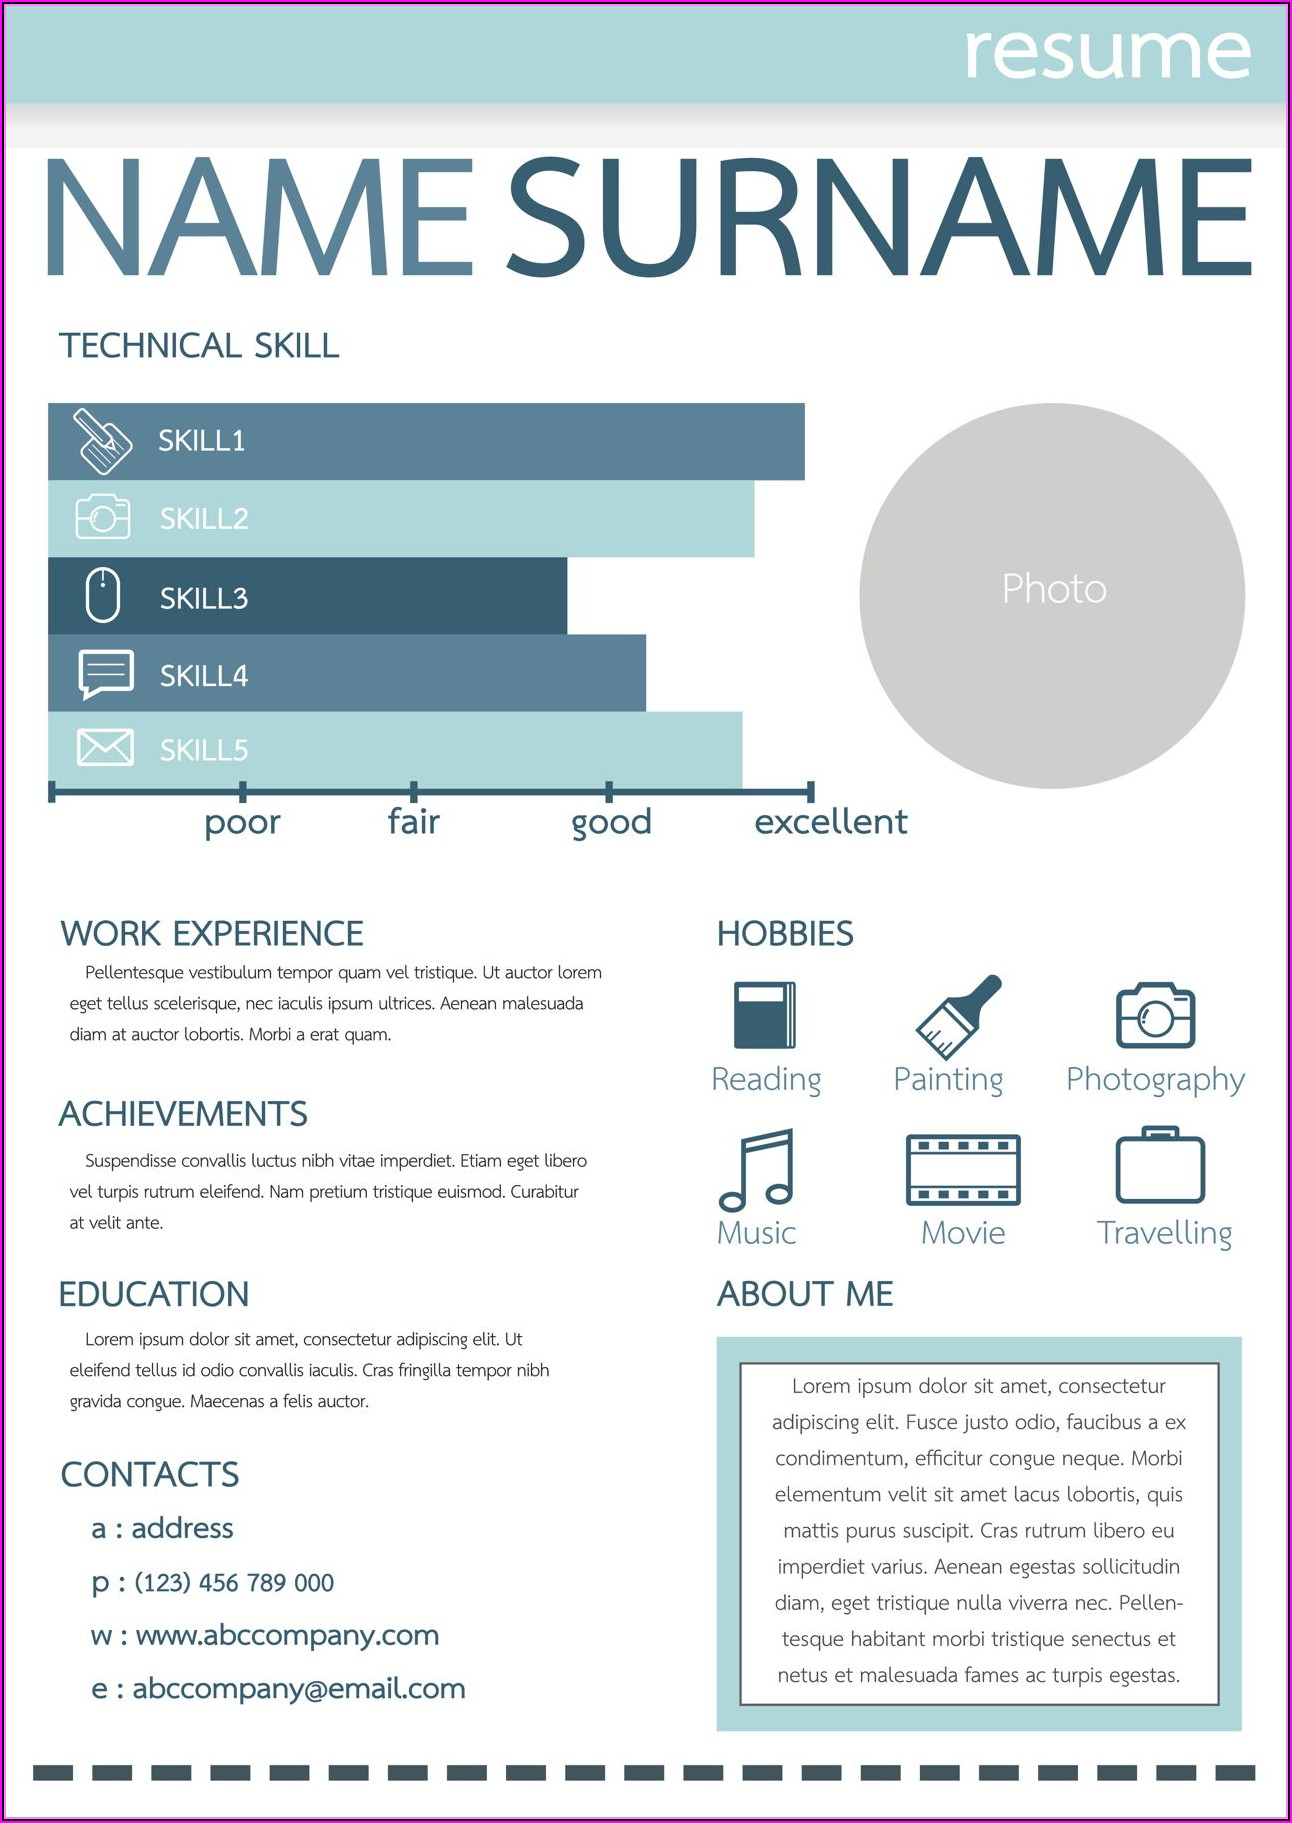 Resume Examples For Jobs Free Download